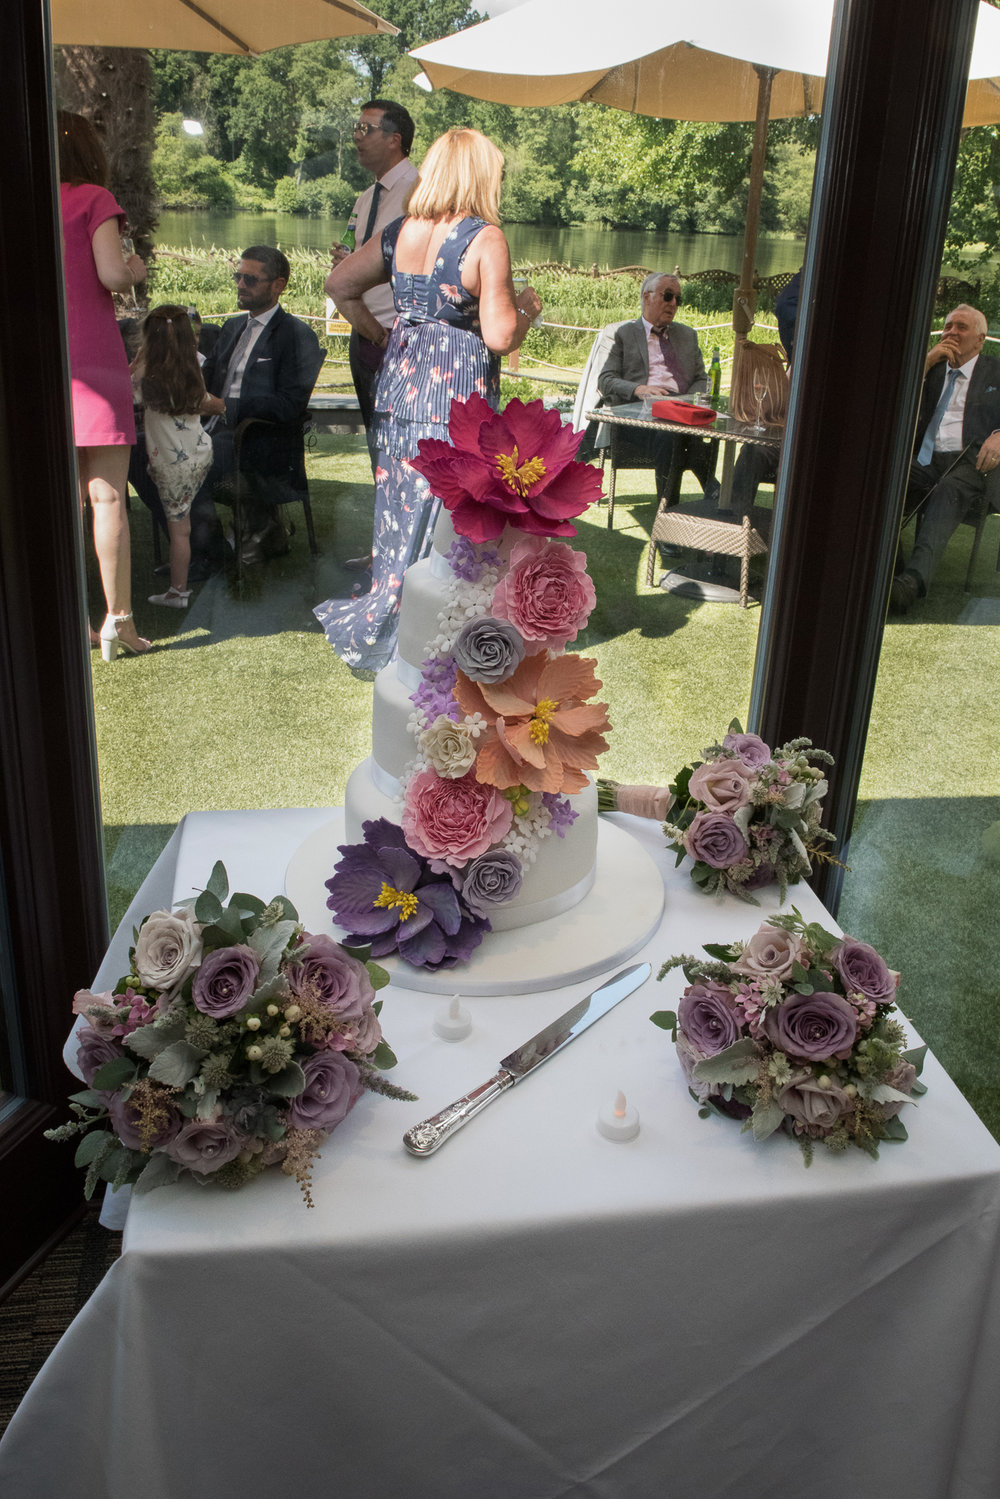 Frensham-Pond-Hotel-wedding_43.JPG